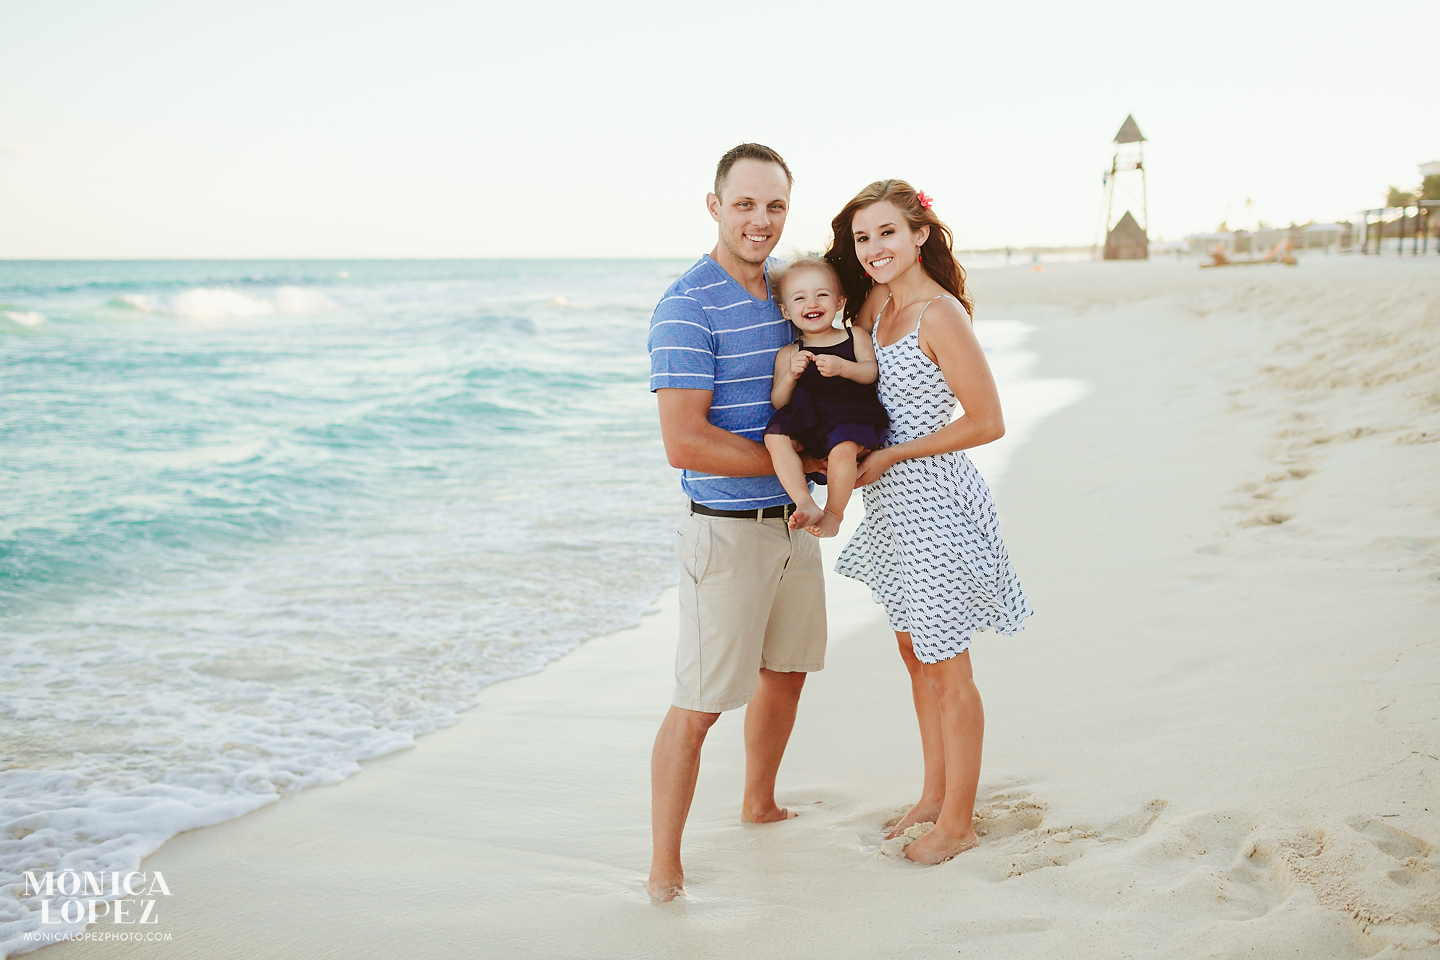 Playa del Carmen Family Portraits Monica Lopez Photography